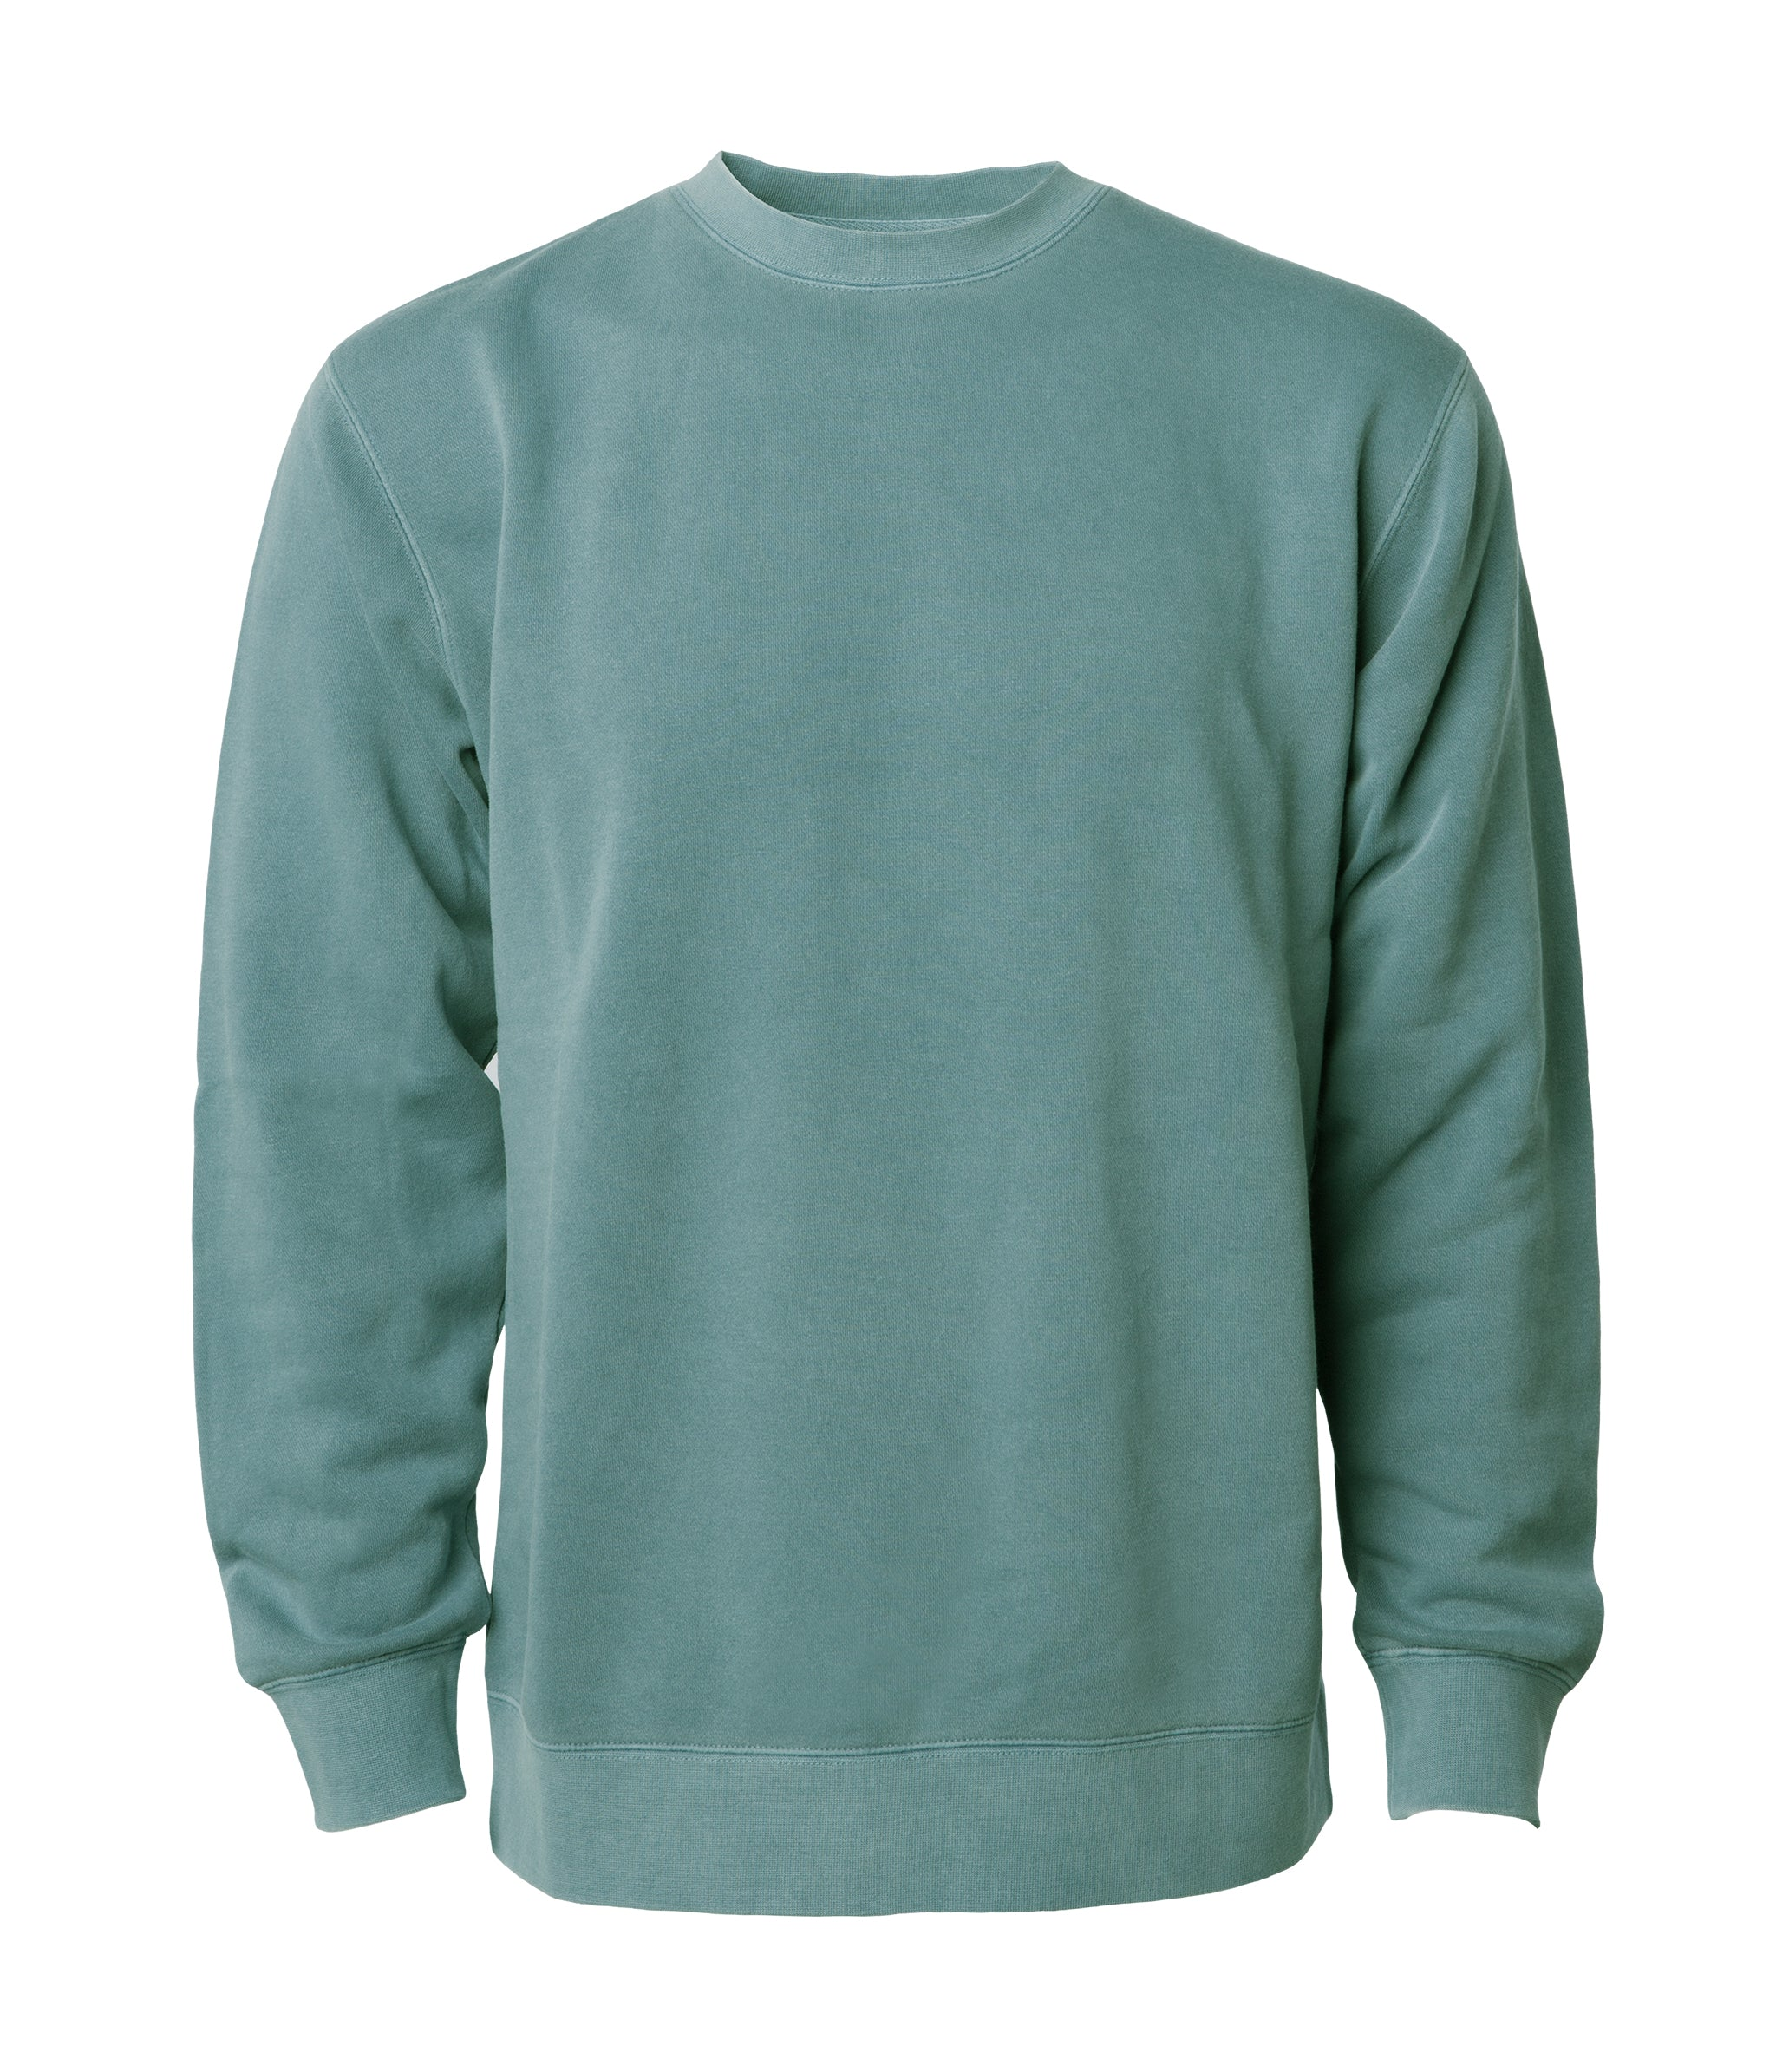 fd263328d4b1 Unisex Midweight Pigment Dyed Crew Neck